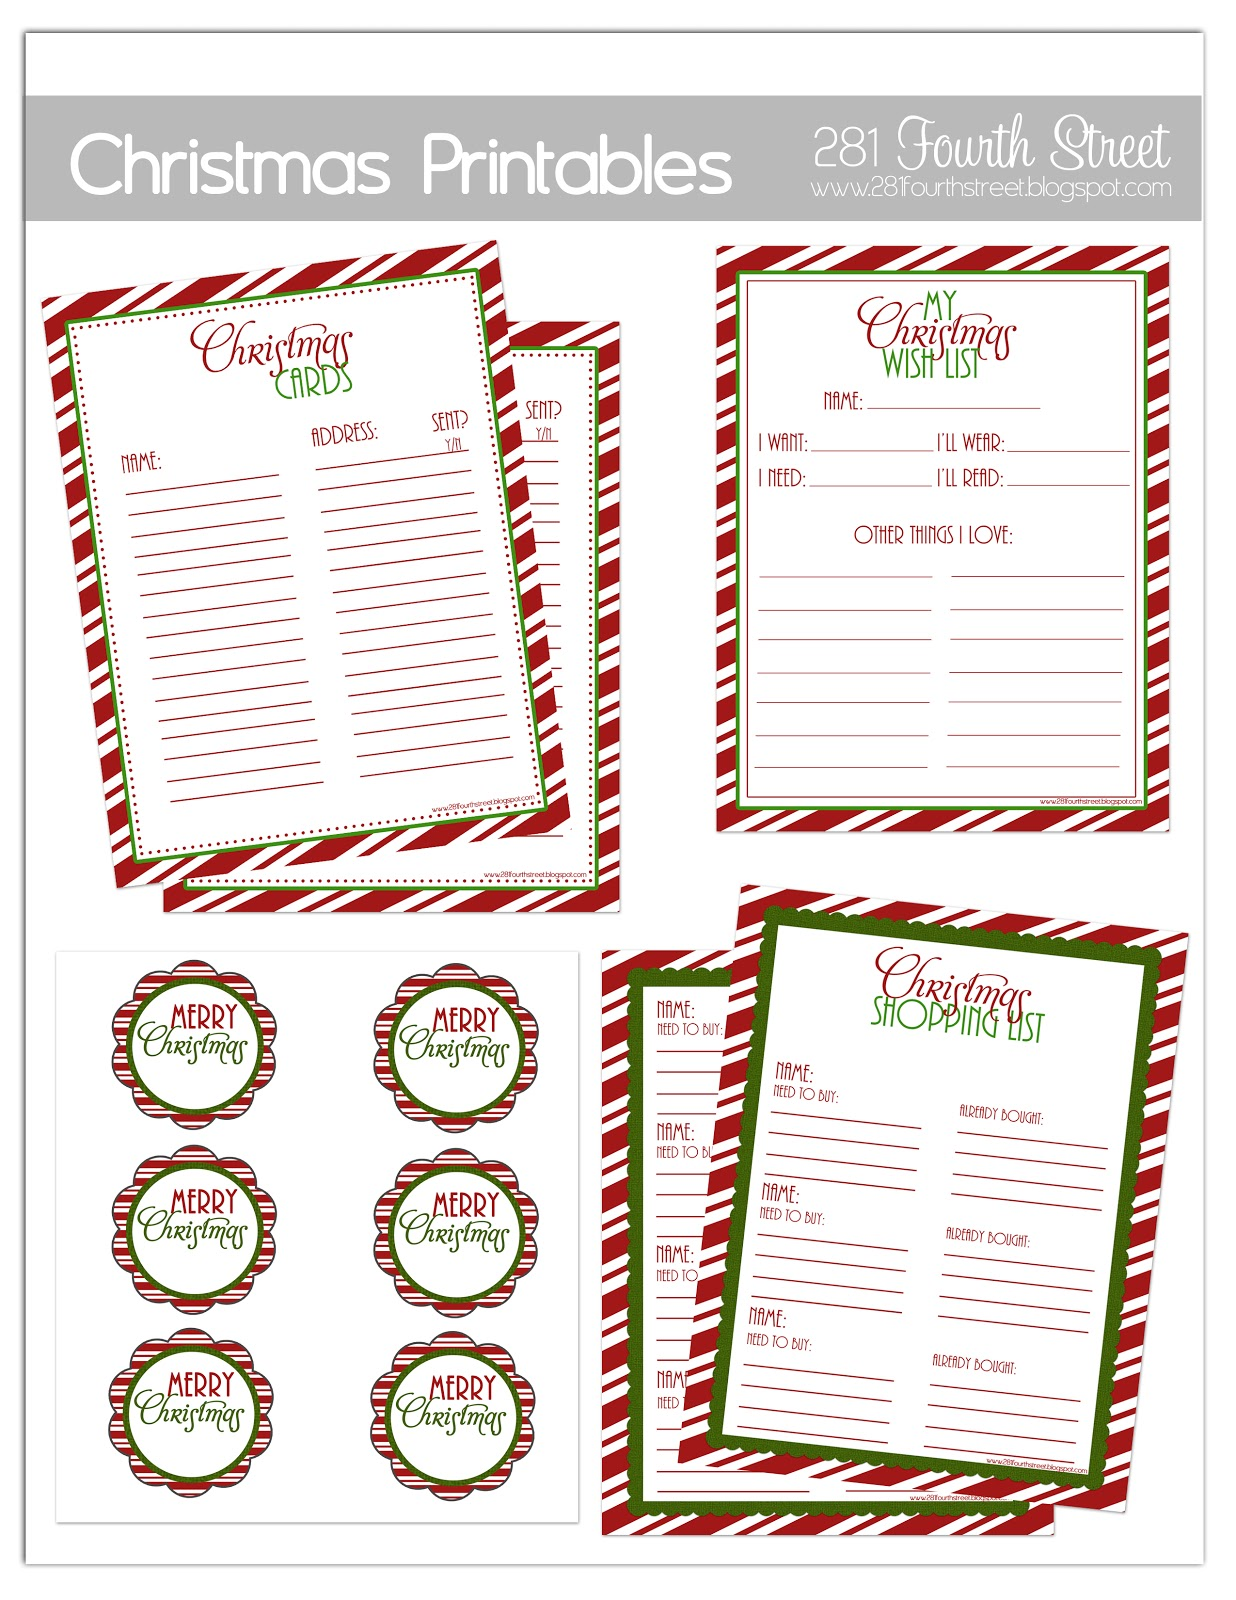 Christmas Wish List Paper moreover Mexican 20pride also 254280 James Wolk Actor in addition Marilyn Monroe as well 8 Super Bachelorette Party Games To Get The Party Started. on oscar list 2016 printable